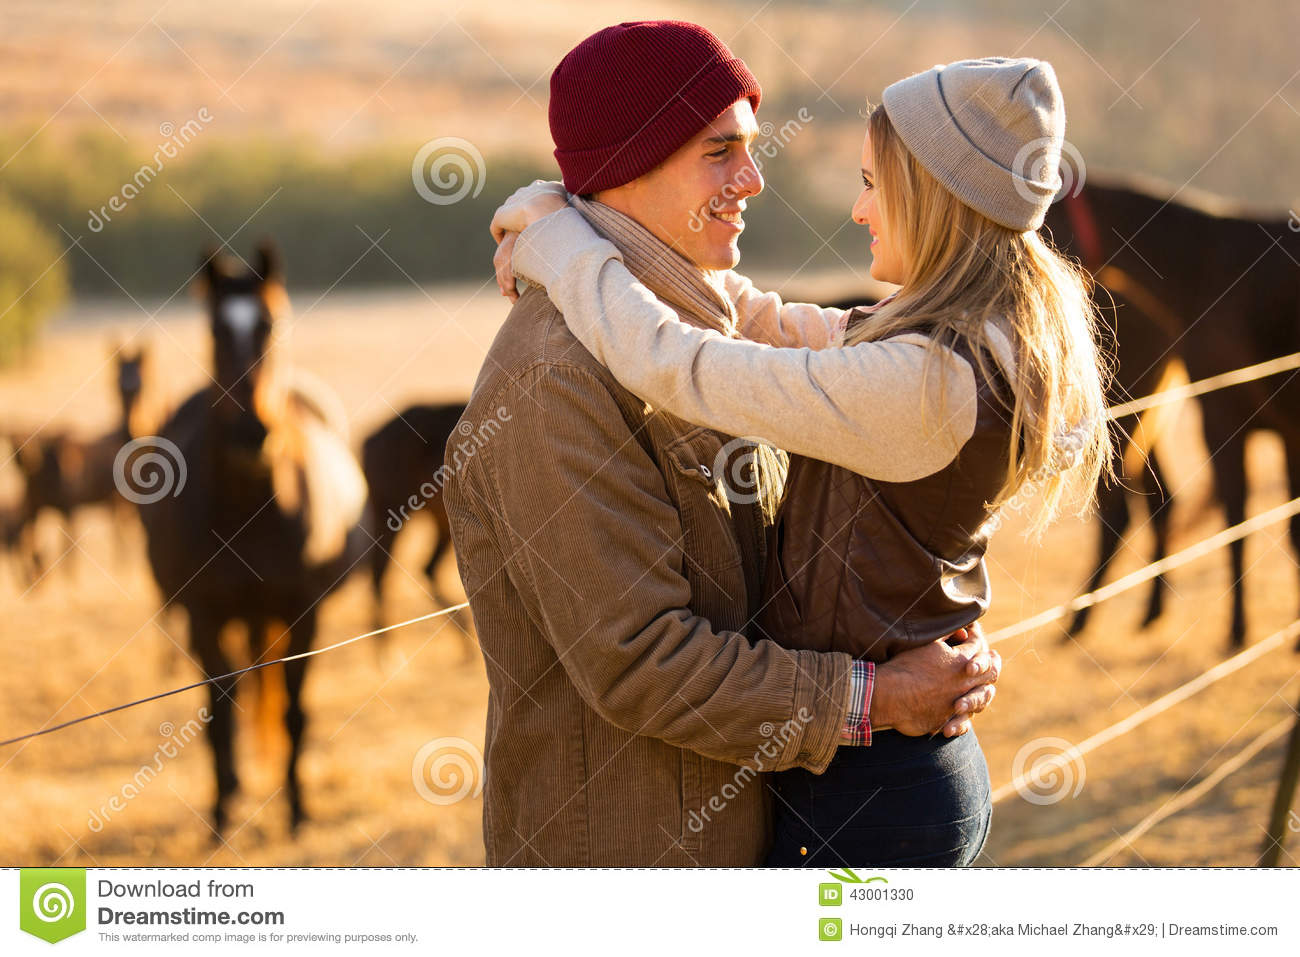 2 032 Romantic Couple Horse Photos Free Royalty Free Stock Photos From Dreamstime